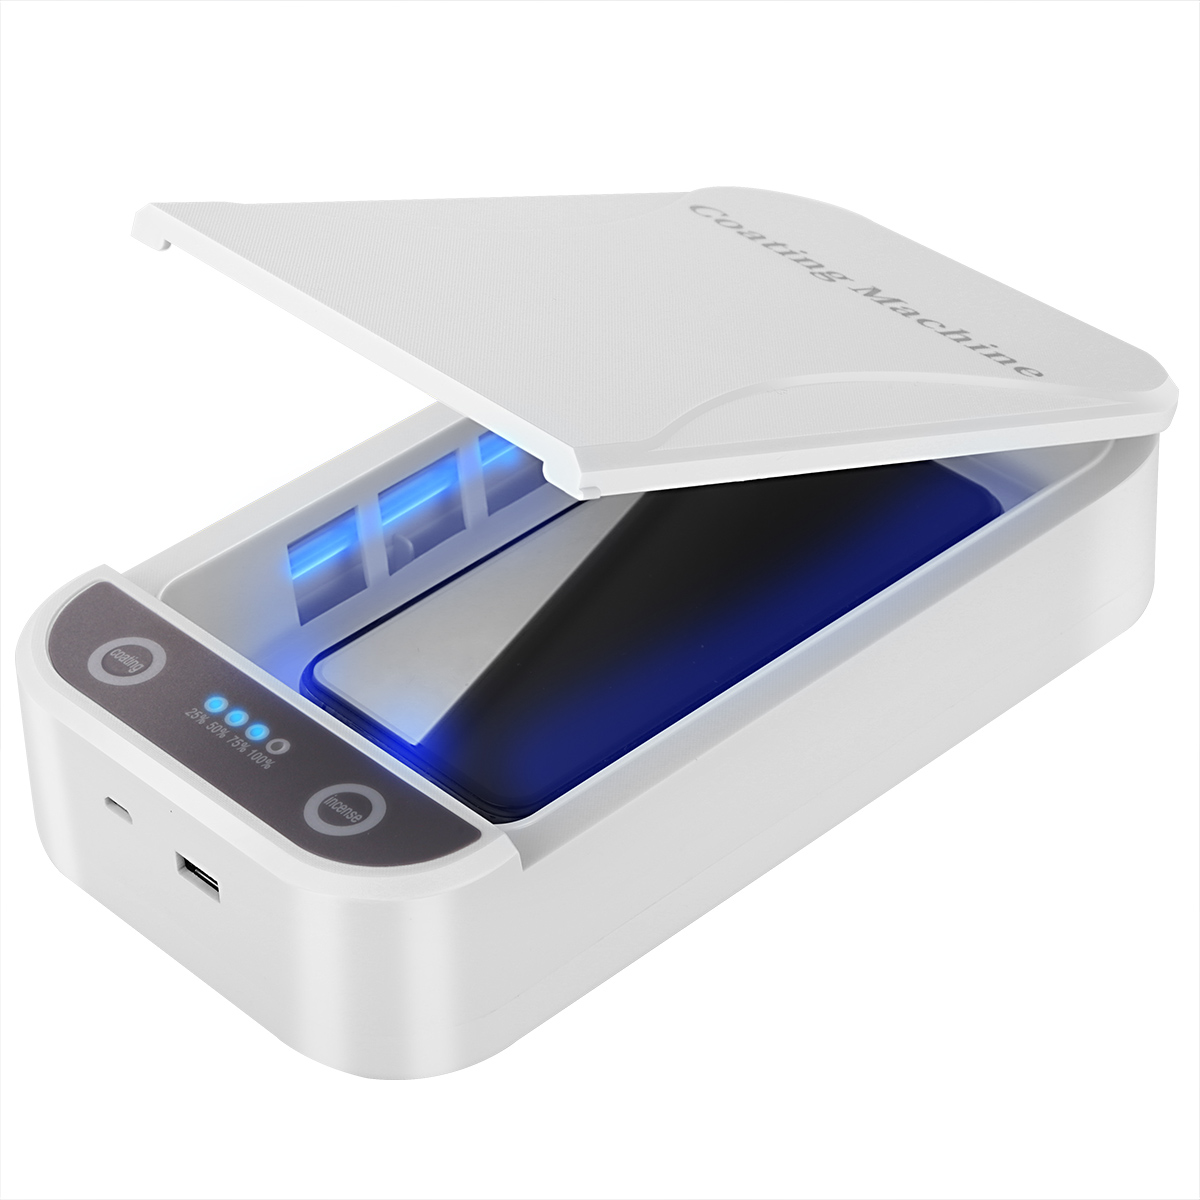 UV Sterilizer Box Portable Sterilizer Case UV Sterilizer Cell Phone Disinfection Boxes With USB Cable Dual UV Lights